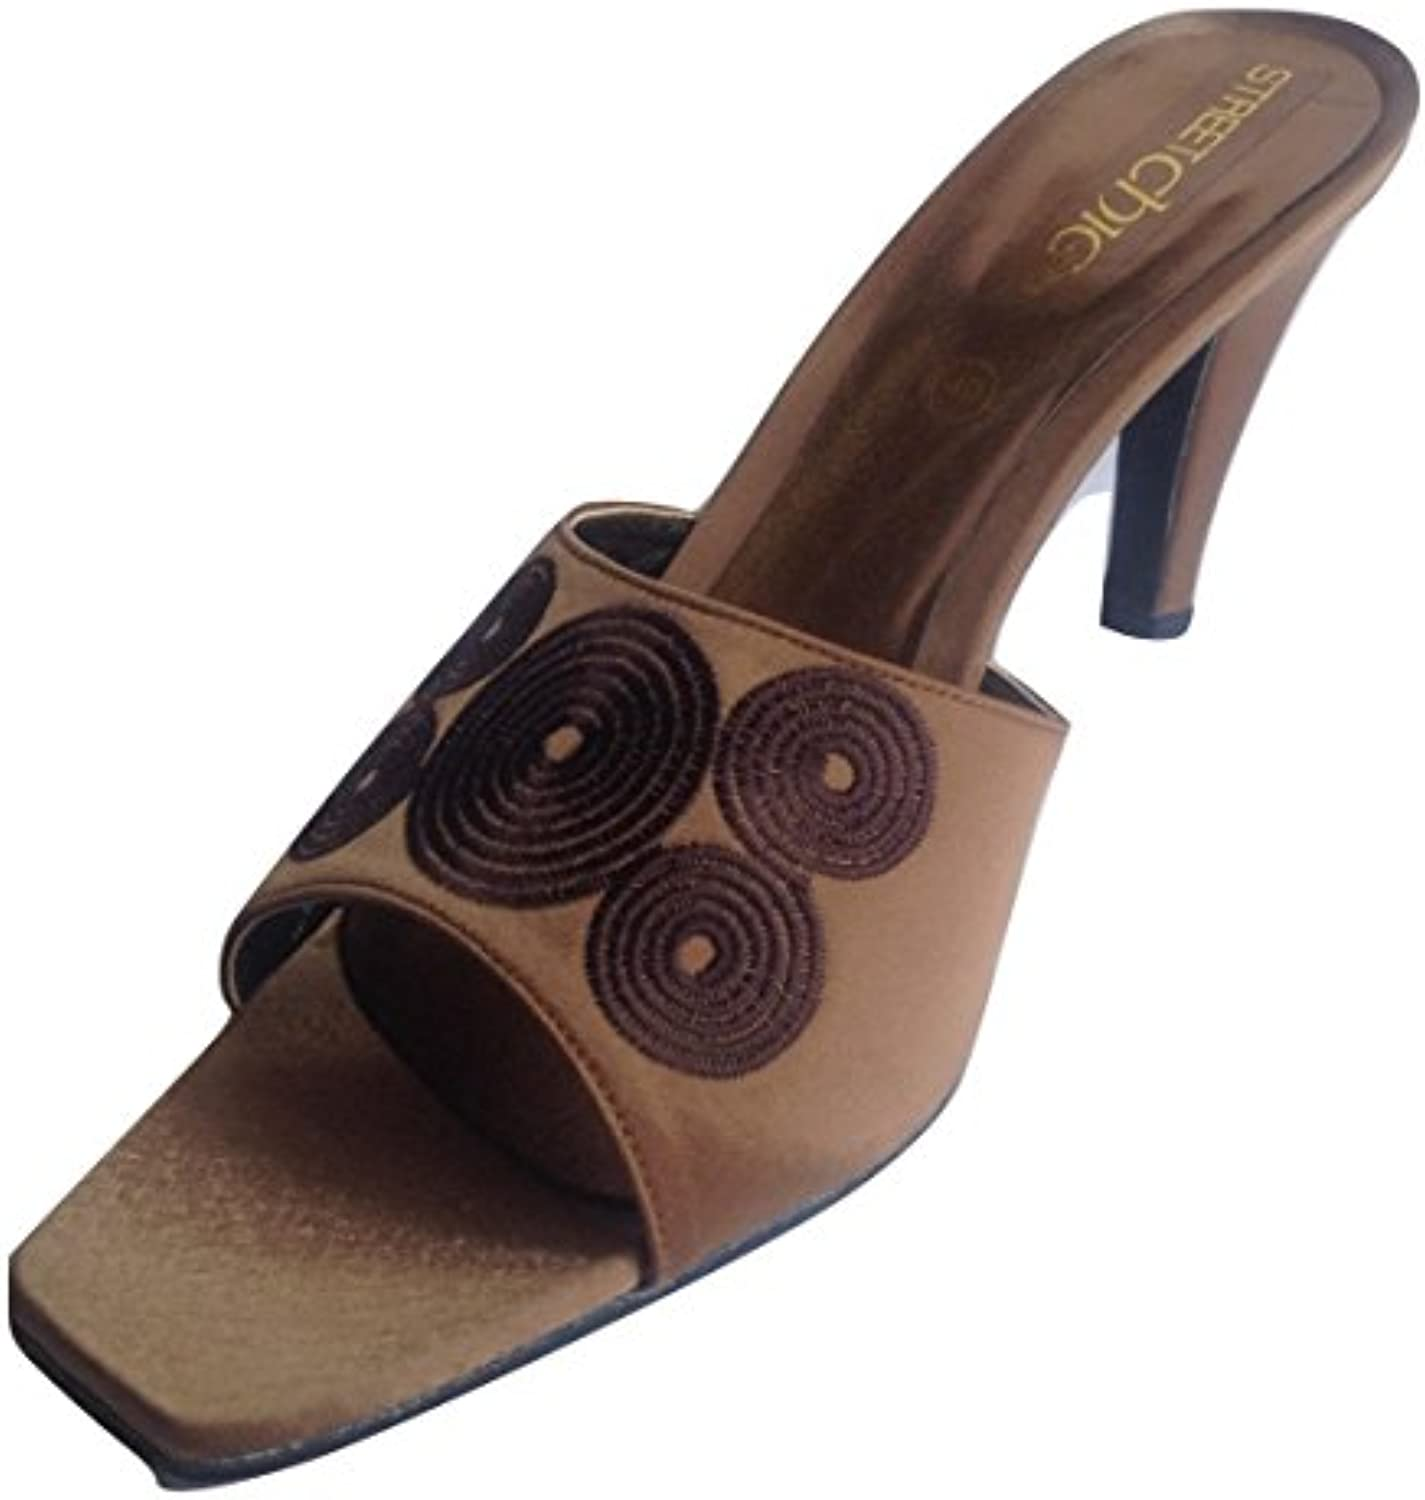 Street Chic Moscow Size Brown Size Moscow 38 EU 97c430